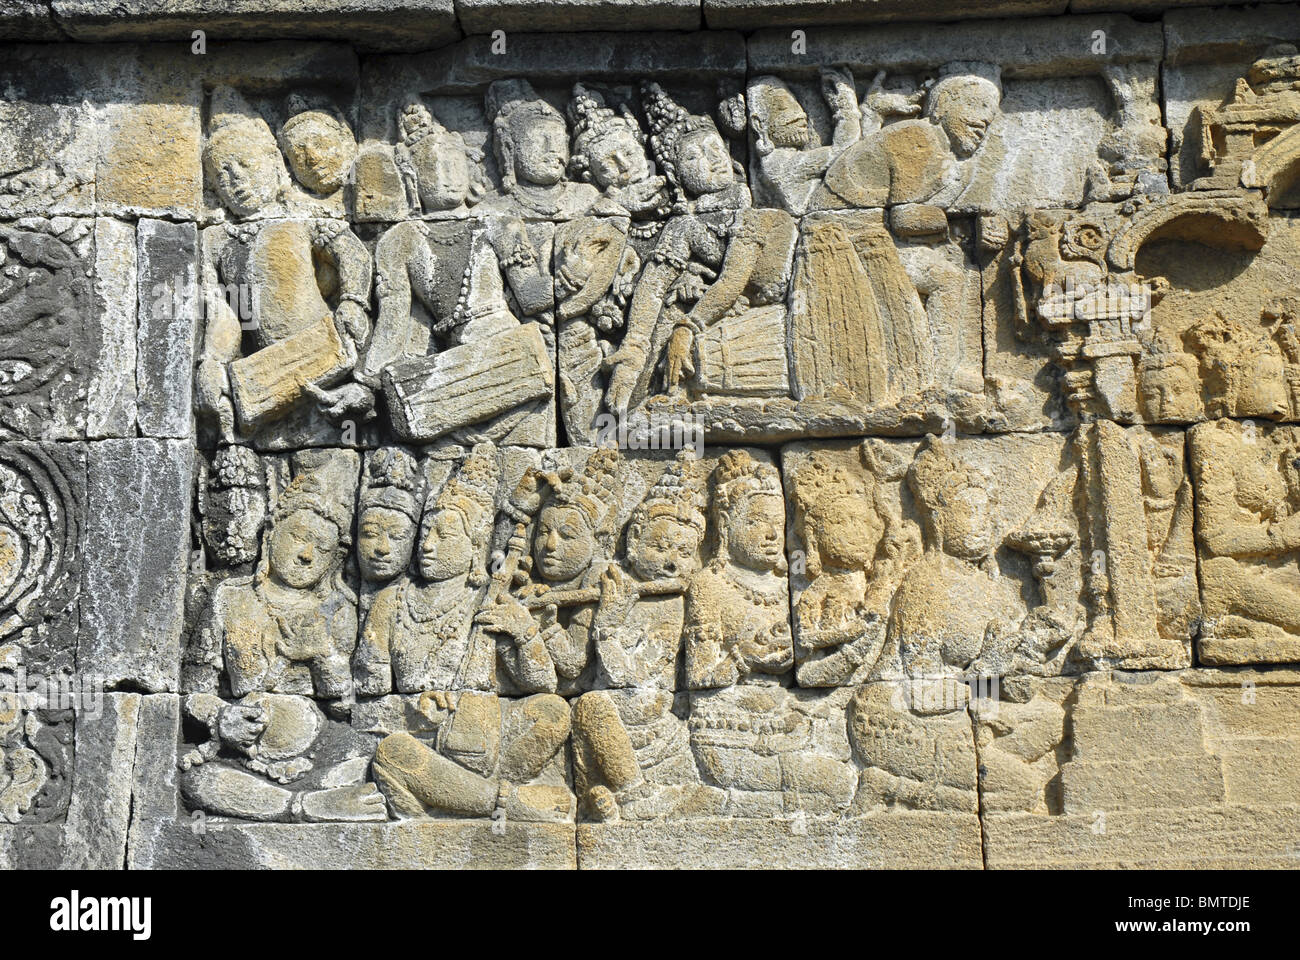 Indonesia-Java-Borobudur, Third Terrace, Musicians (few playing Drums and flute). - Stock Image